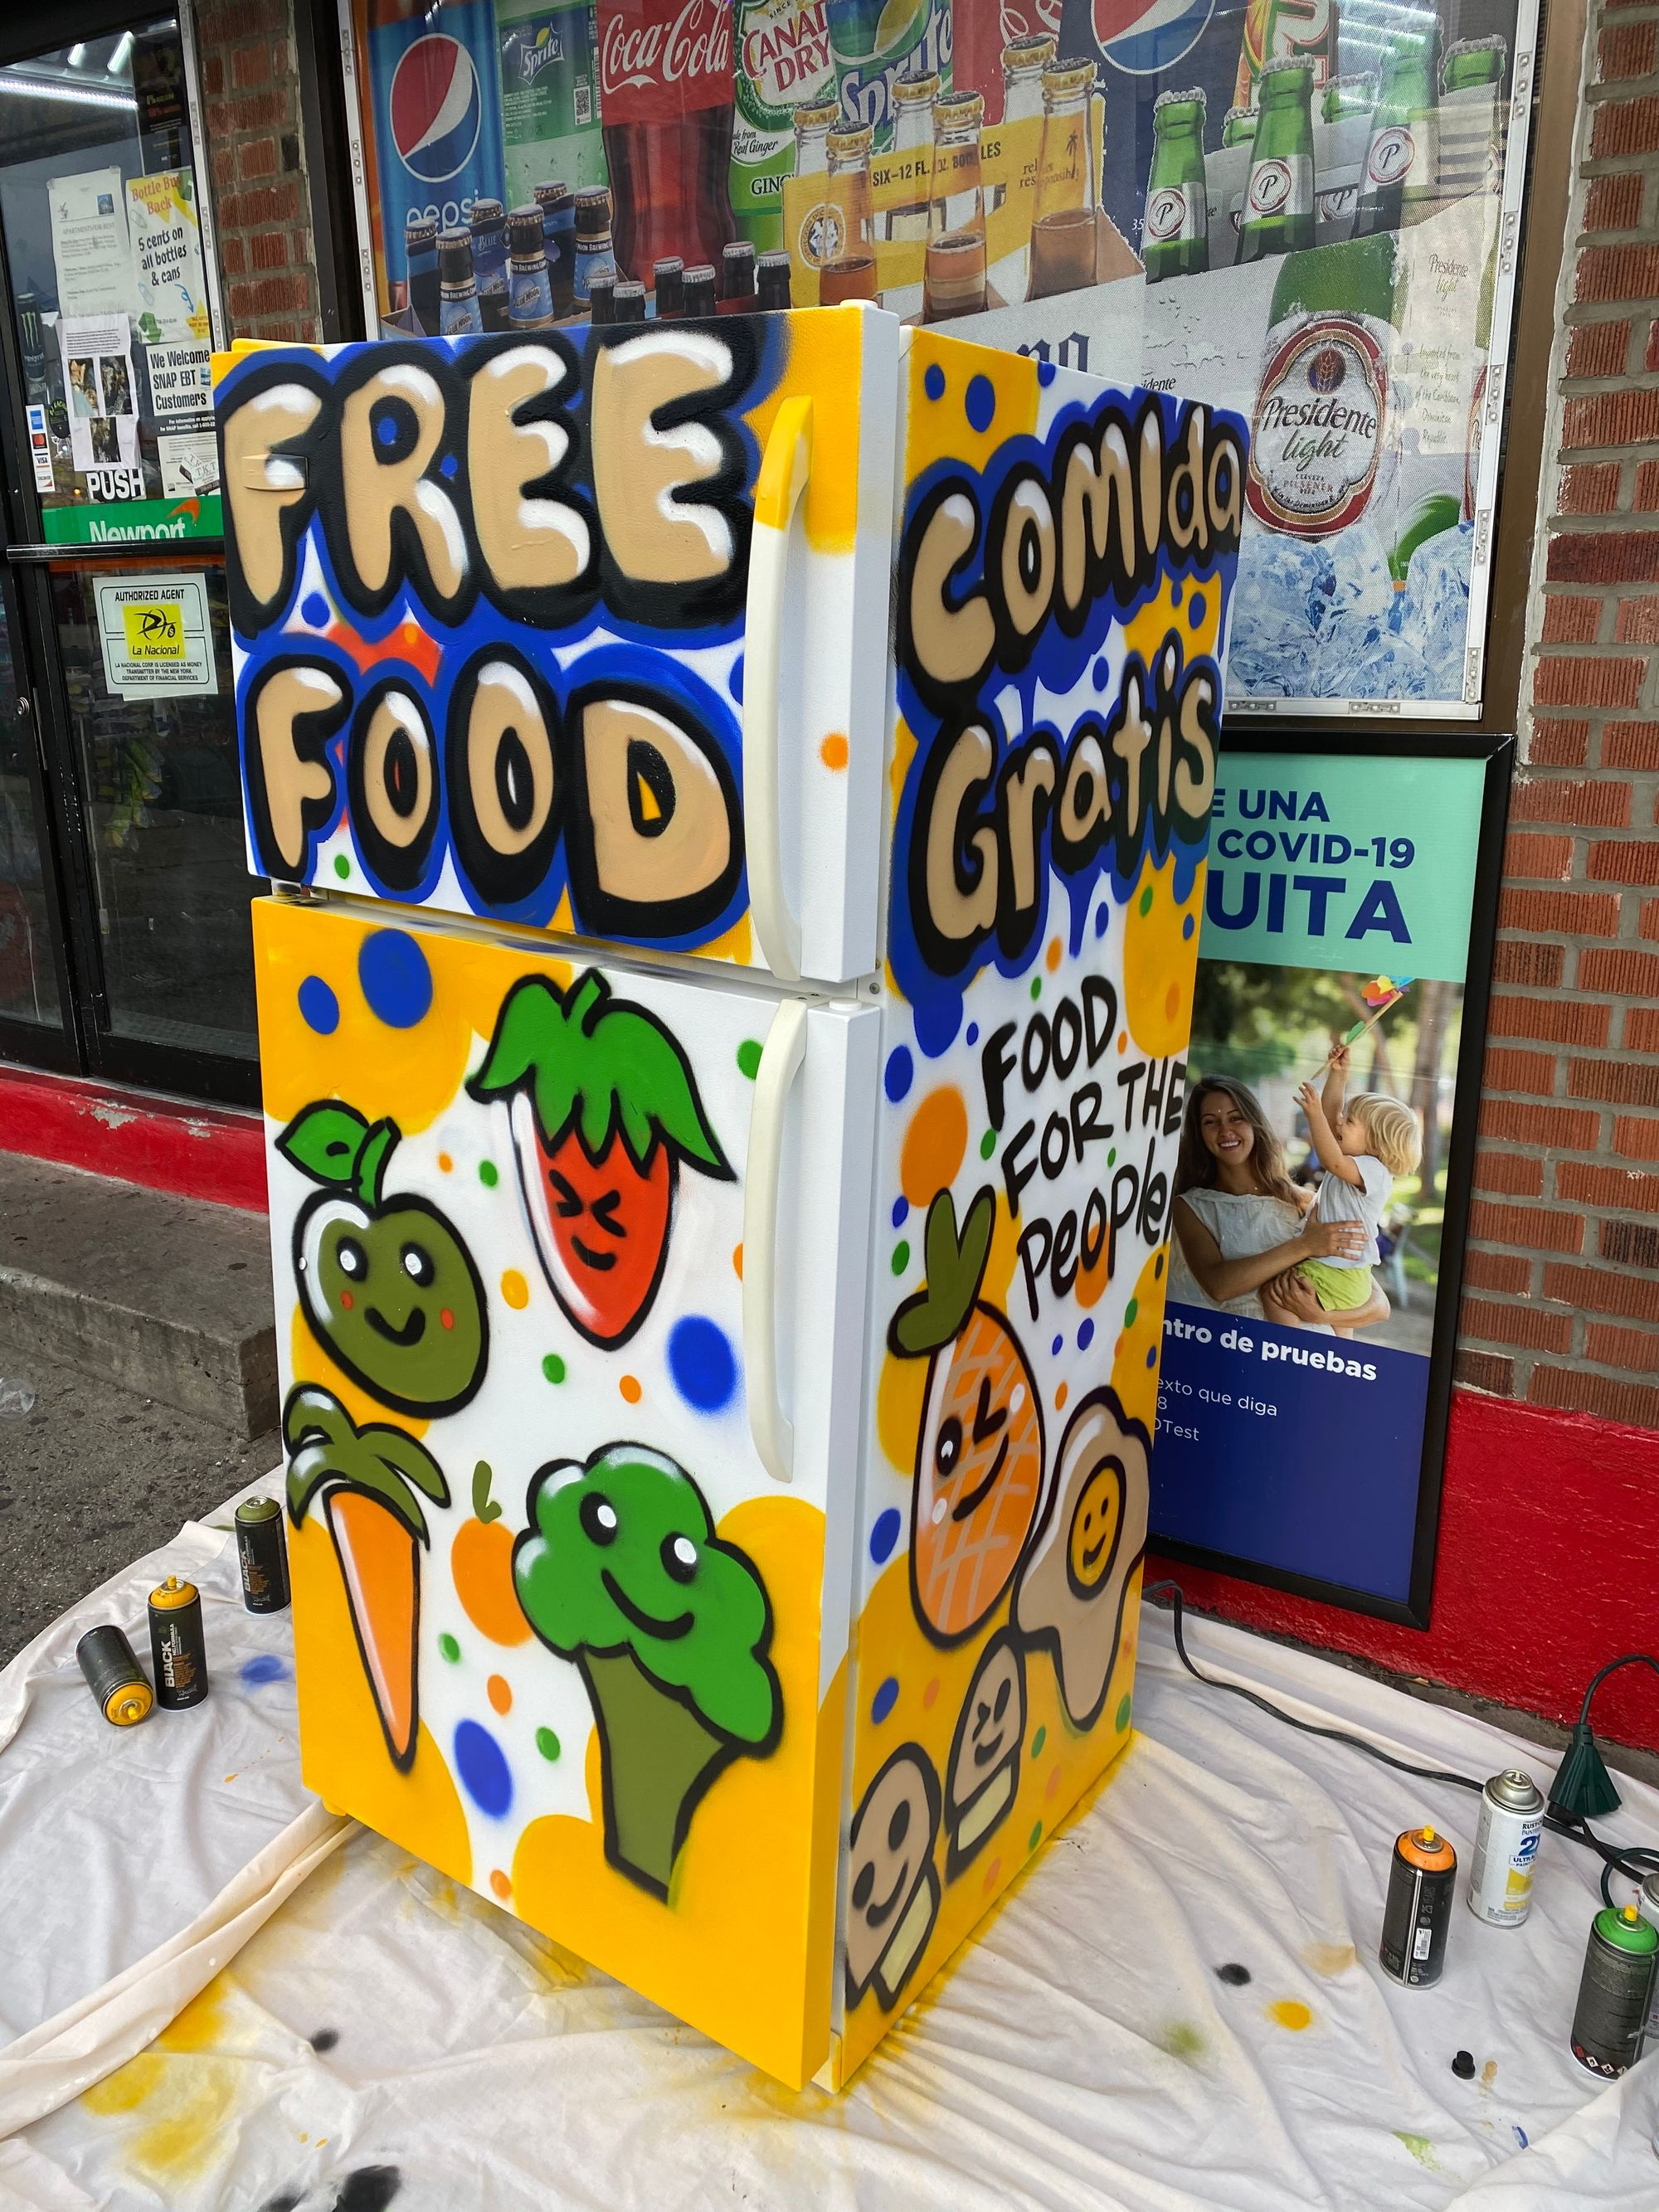 East Bronx Dems Mutual Aid Group's Community Fridge